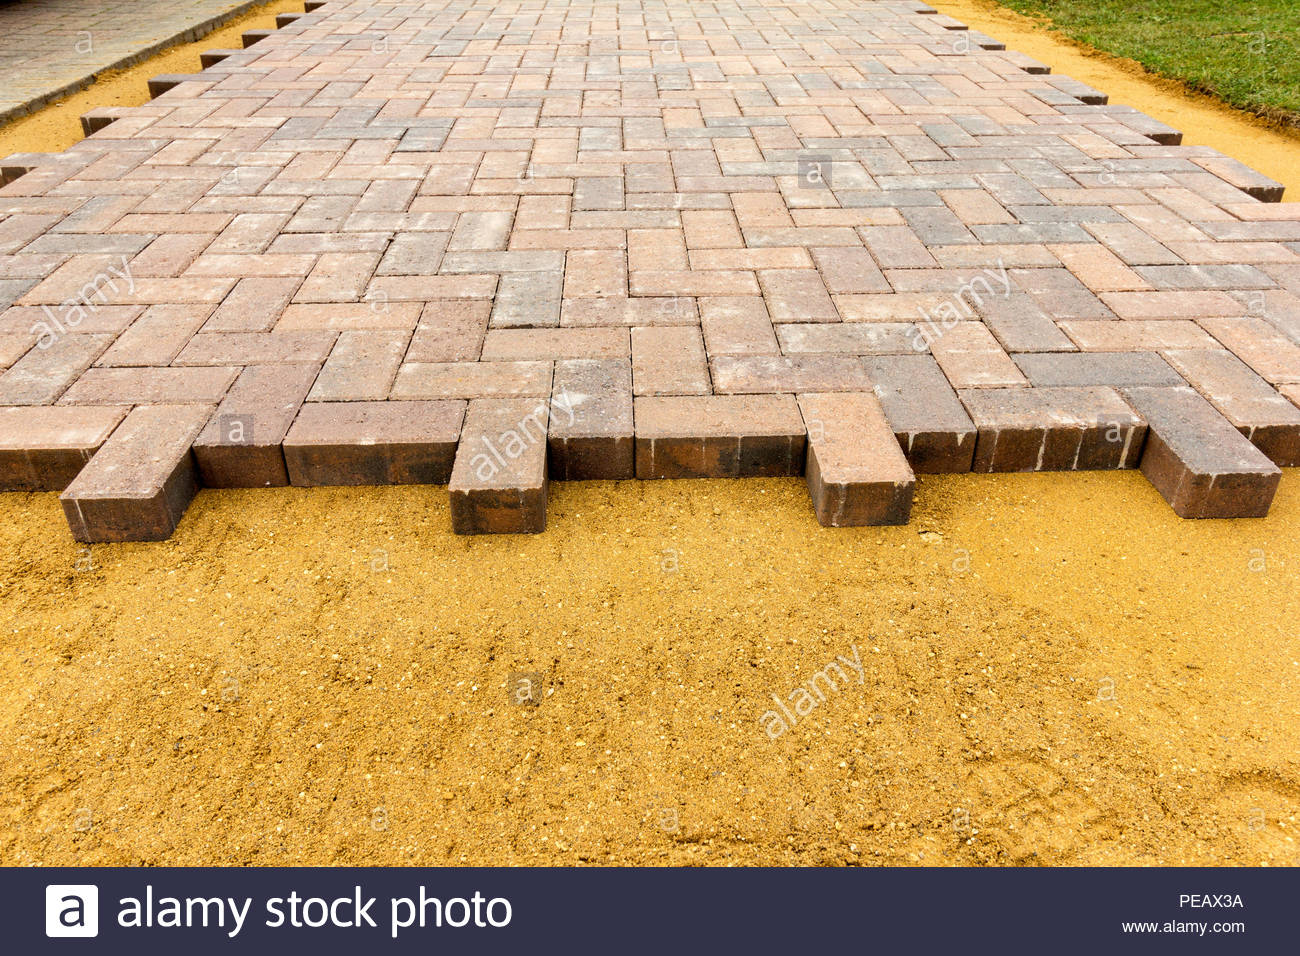 Newly laid block paving applied to a sharp sand base - Stock Image